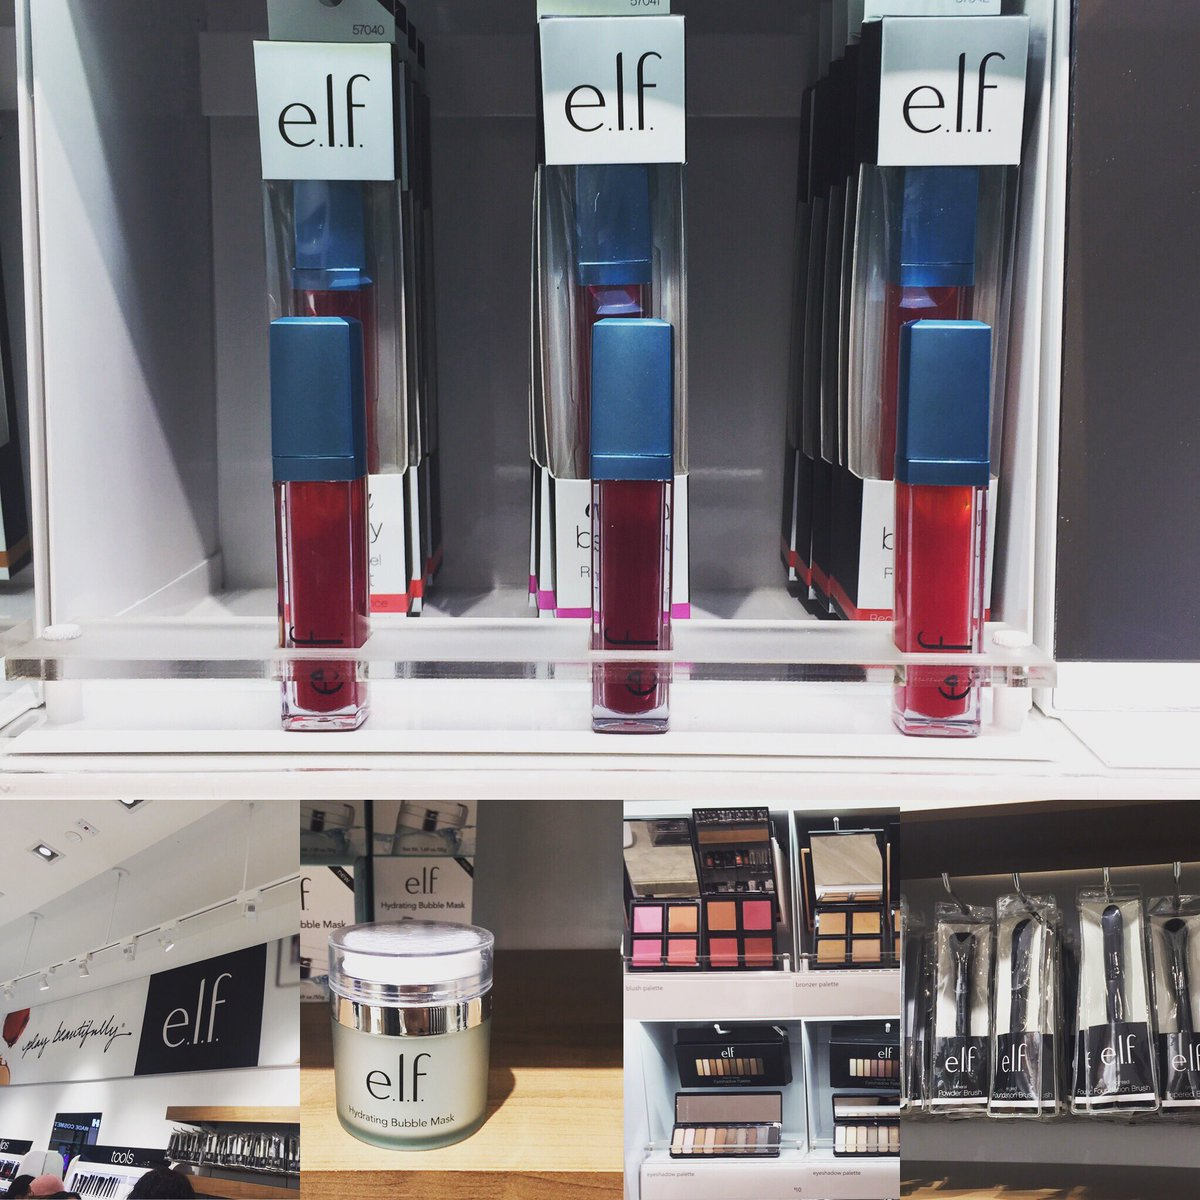 The @elfcosmetics store @WestfieldFS is finally open. My favorite Mineral Powder Brush is only $3!! #shopbeautifully https://t.co/LwAqOIoa7V